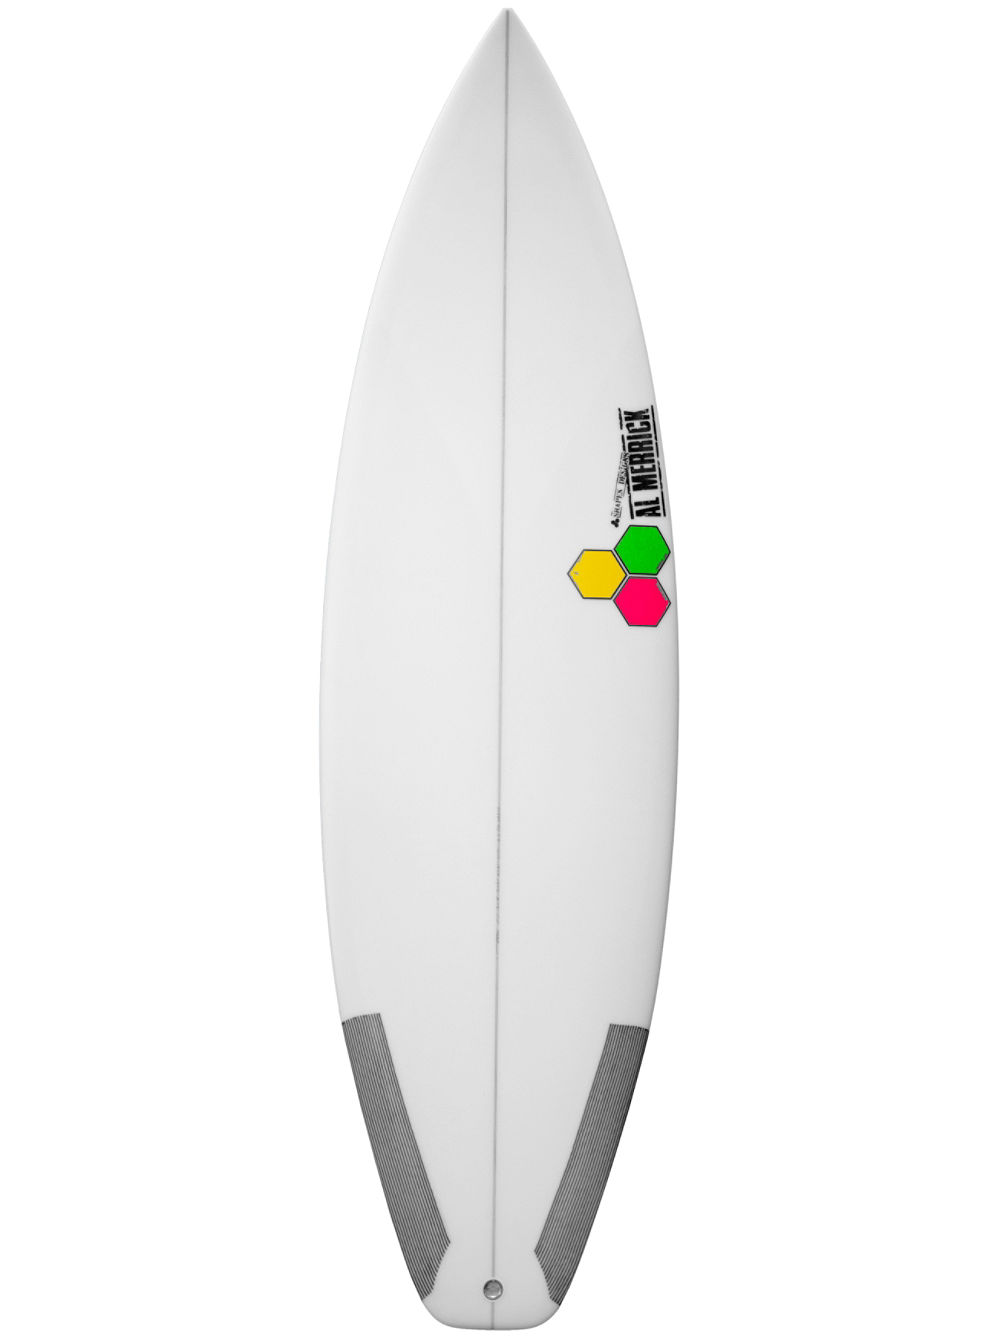 Channel Island New Flyer 5'6 Surfboard